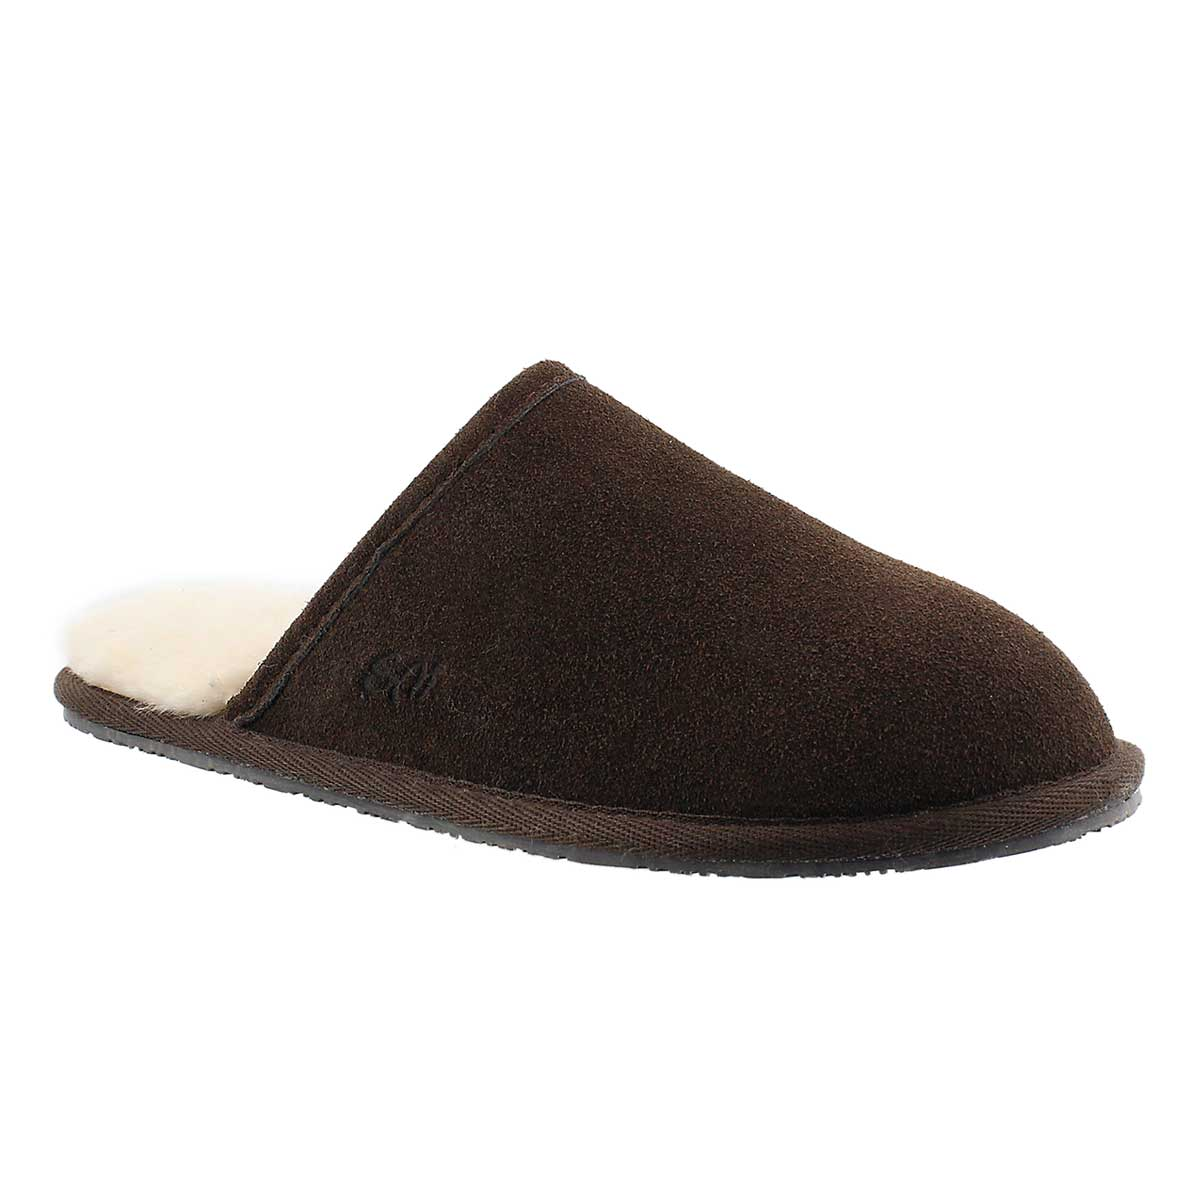 Mns Simon chocolate mem. foam slipper